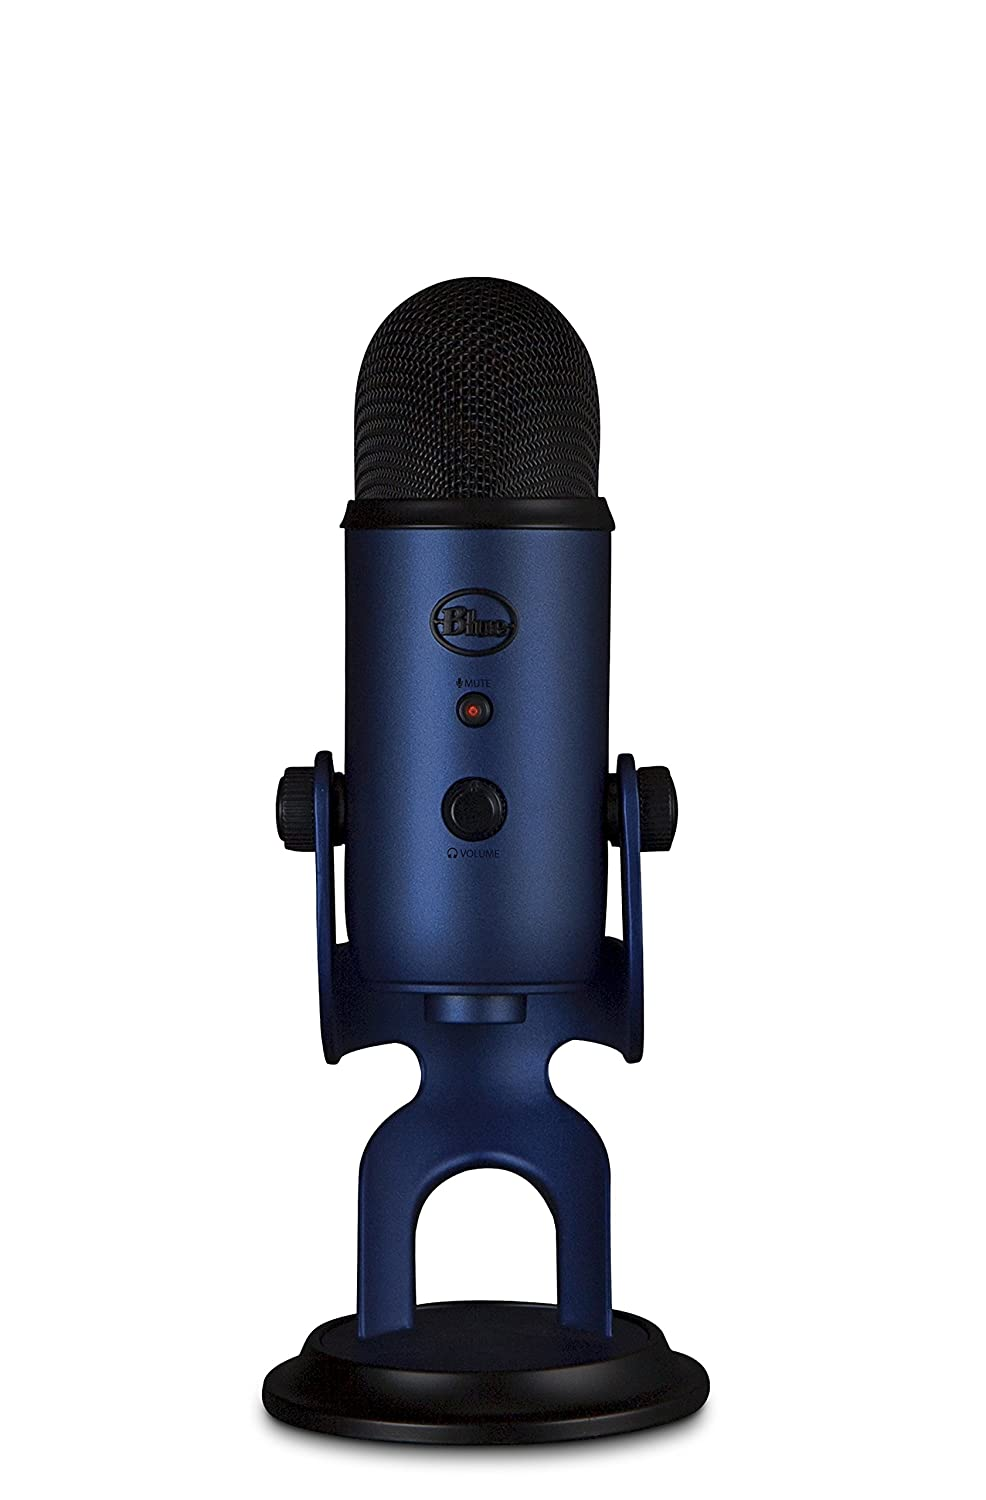 Amazon #DealOfTheDay: Blue Microphones Yeti USB Microphone in Midnight Blue